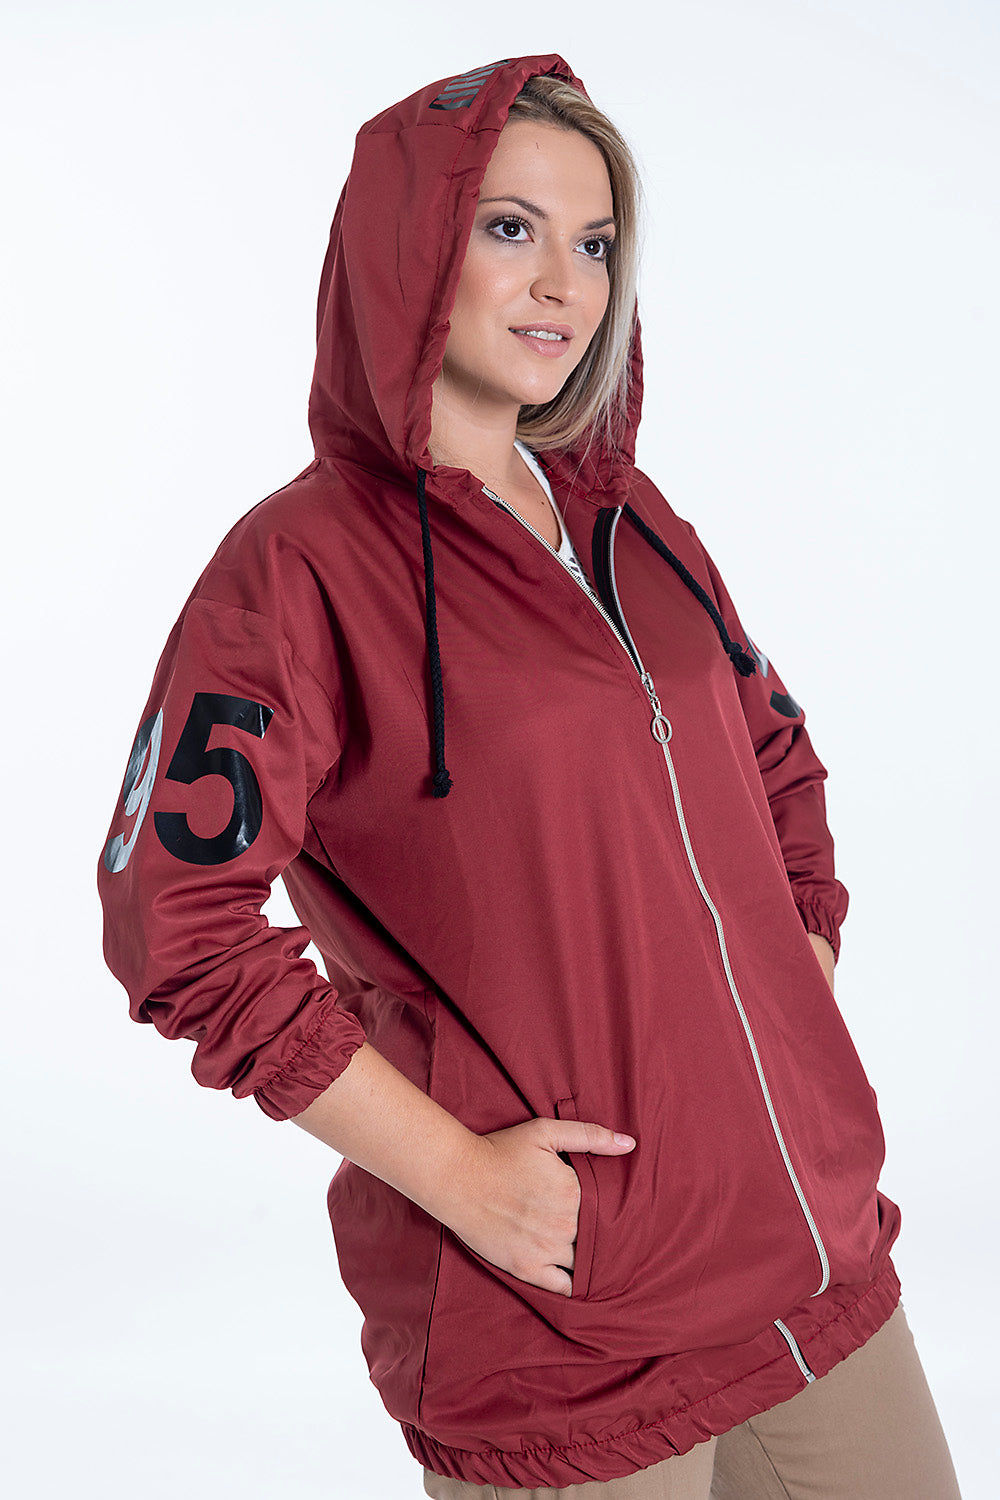 Long jacket with baby girl text in hood